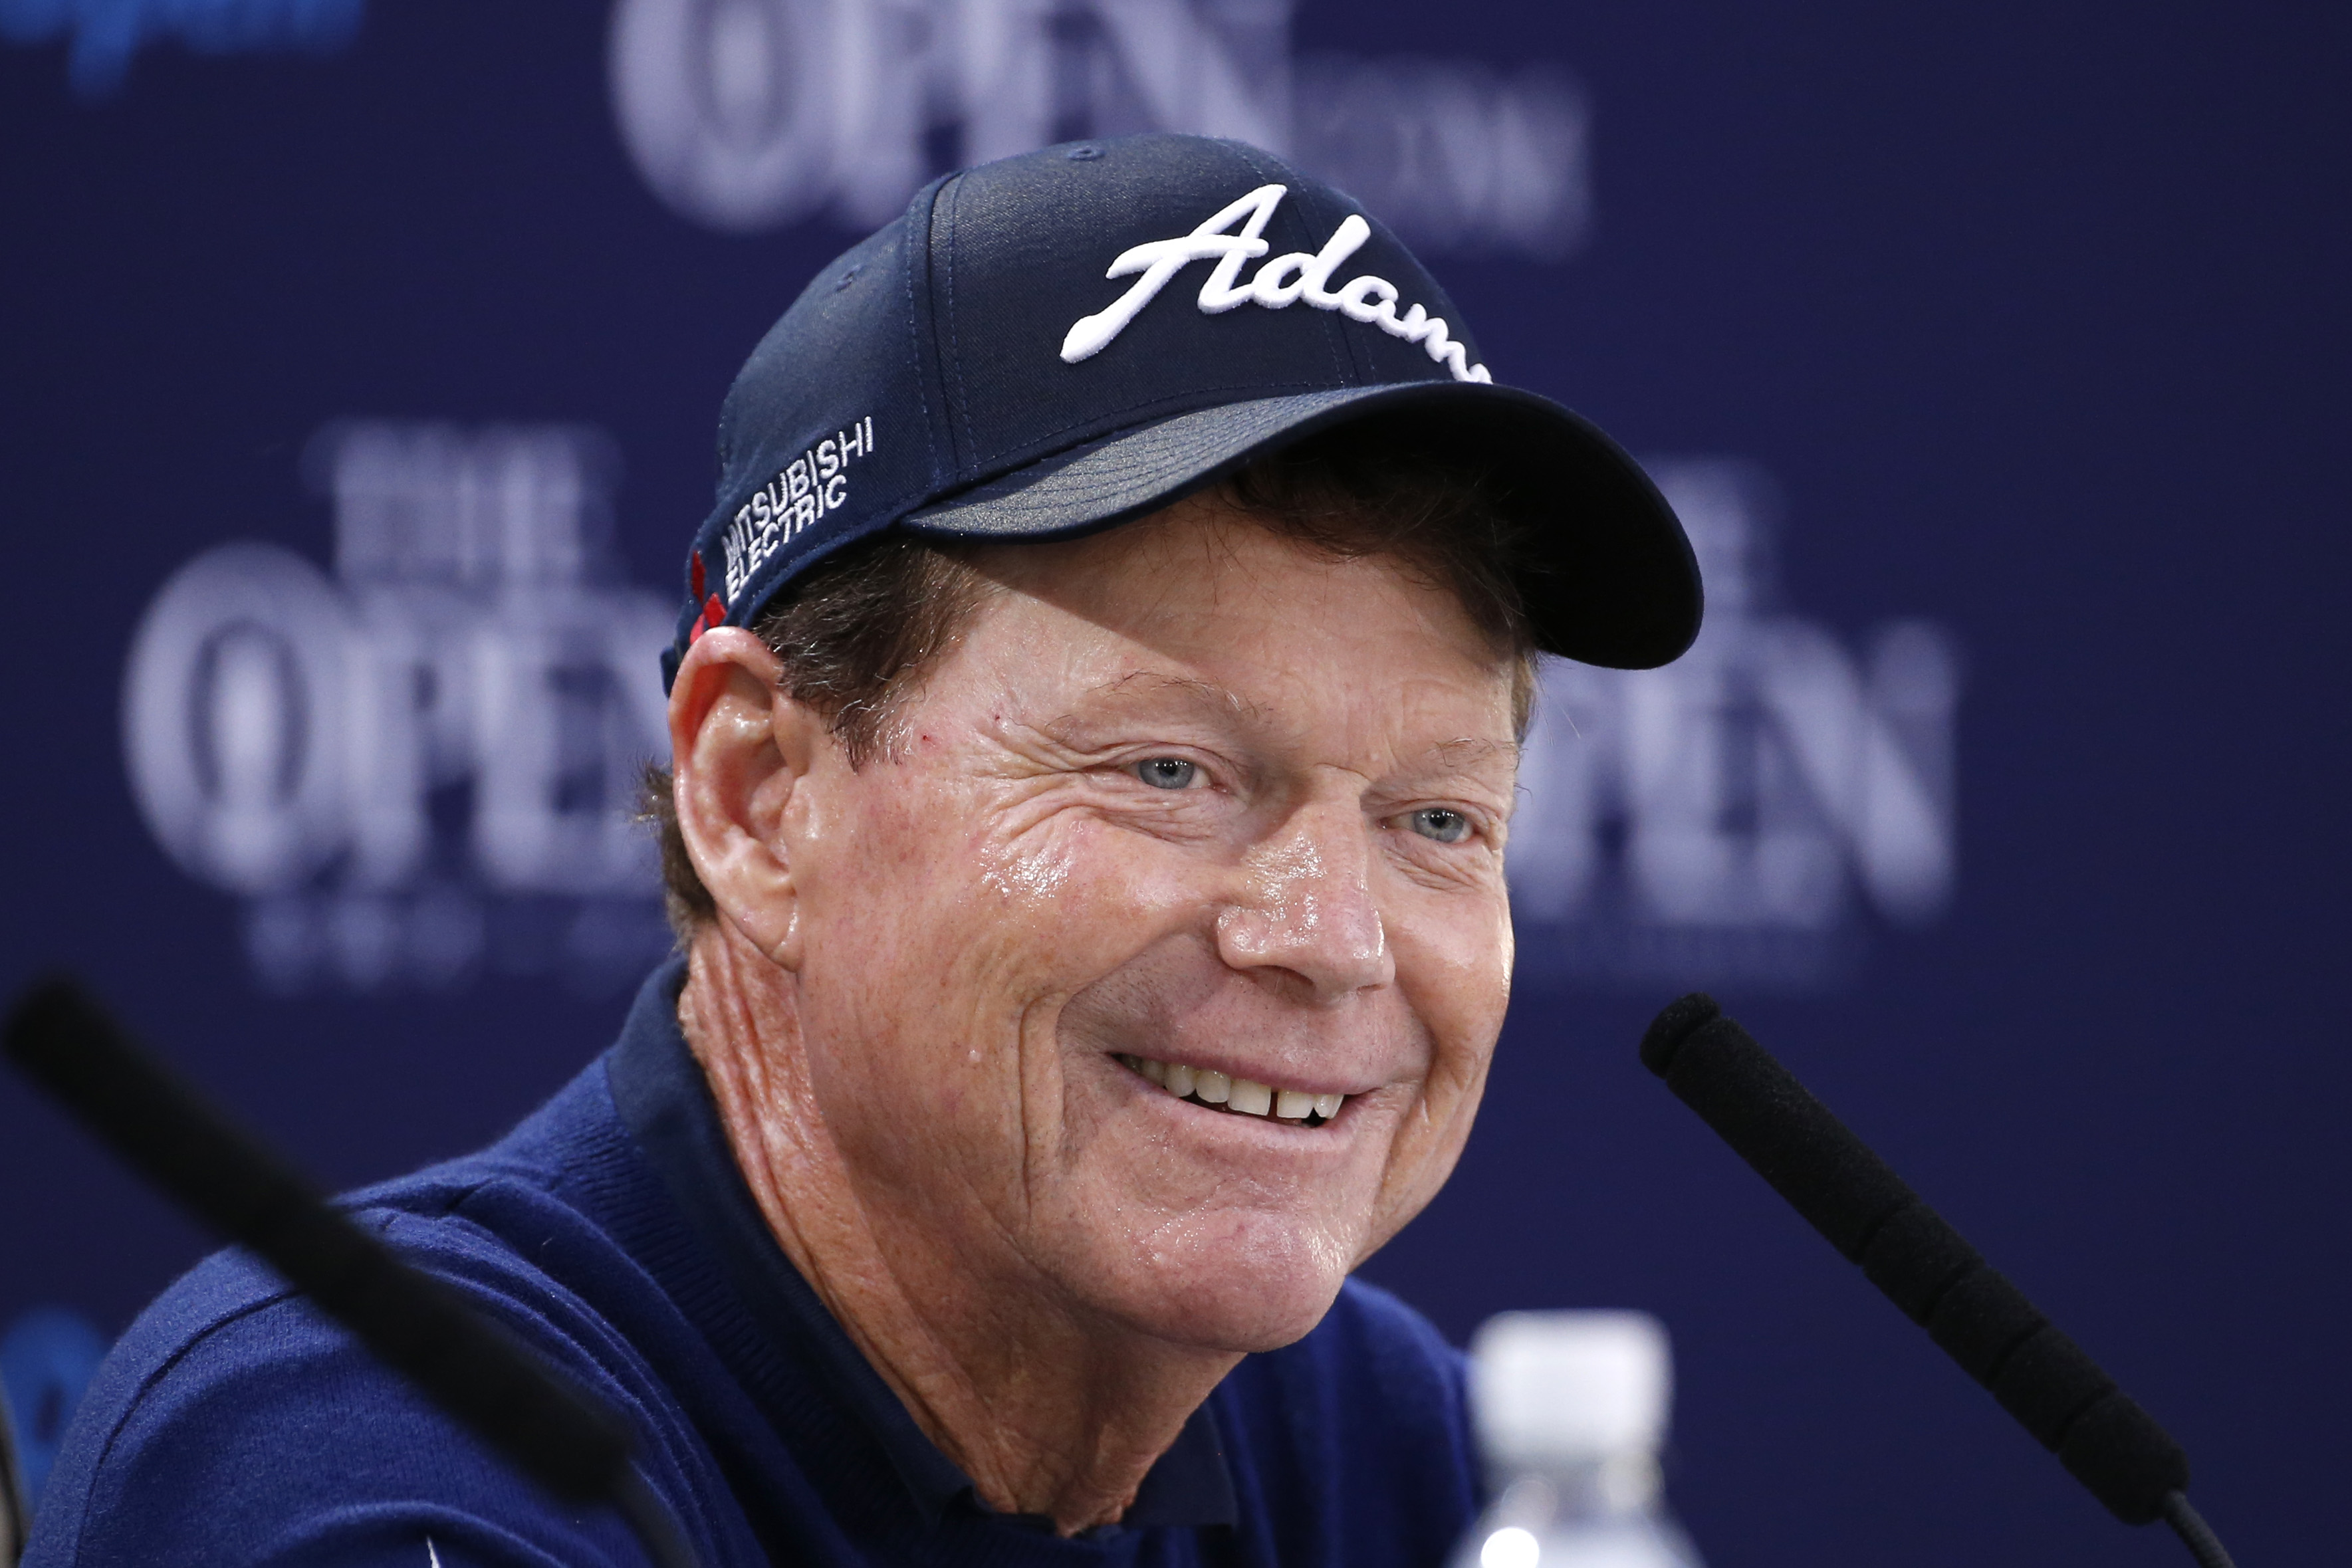 United States' Tom Watson smiles at a news conference during a practice round at the British Open Golf Championship at the Old Course, St. Andrews, Scotland, Wednesday, July 15, 2015. (AP Photo/Jon Super)